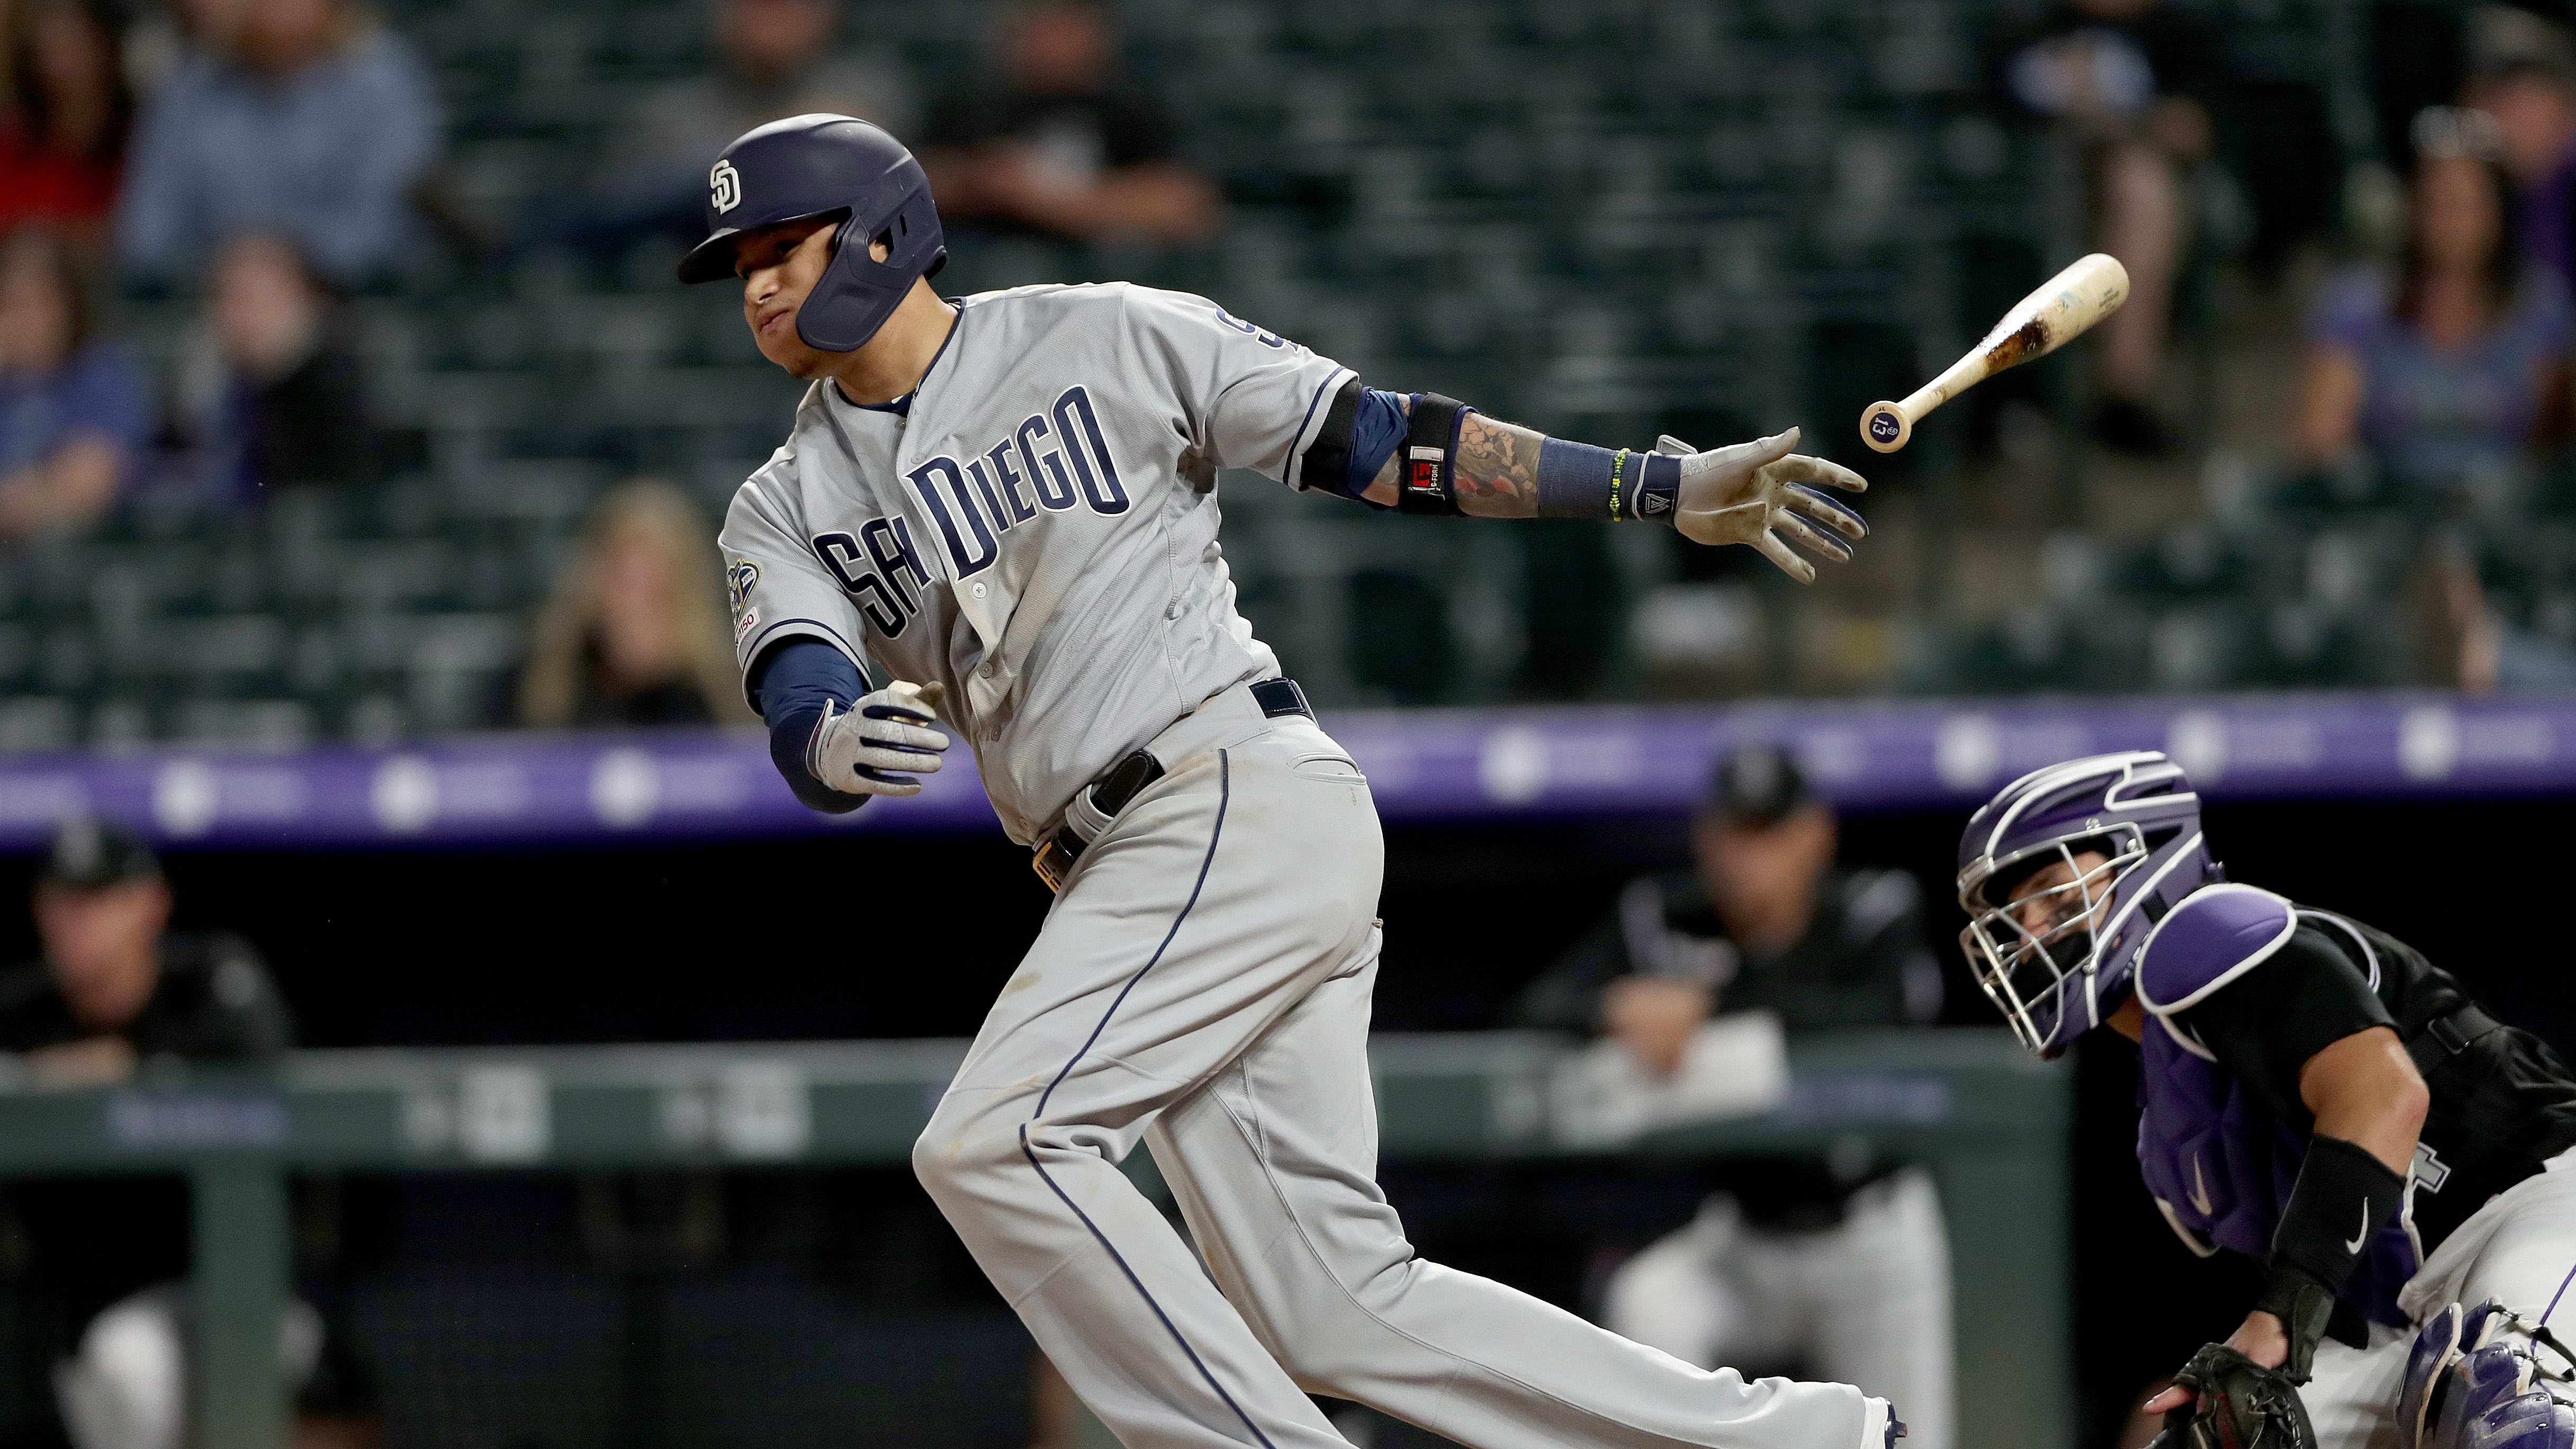 DENVER, COLORADO - JUNE 14: Manny Machado #13 of the San Diego Padres hits a RBI double in the 12th inning against the Colorado Rockies at Coors Field on June 14, 2019 in Denver, Colorado. (Photo by Matthew Stockman/Getty Images)